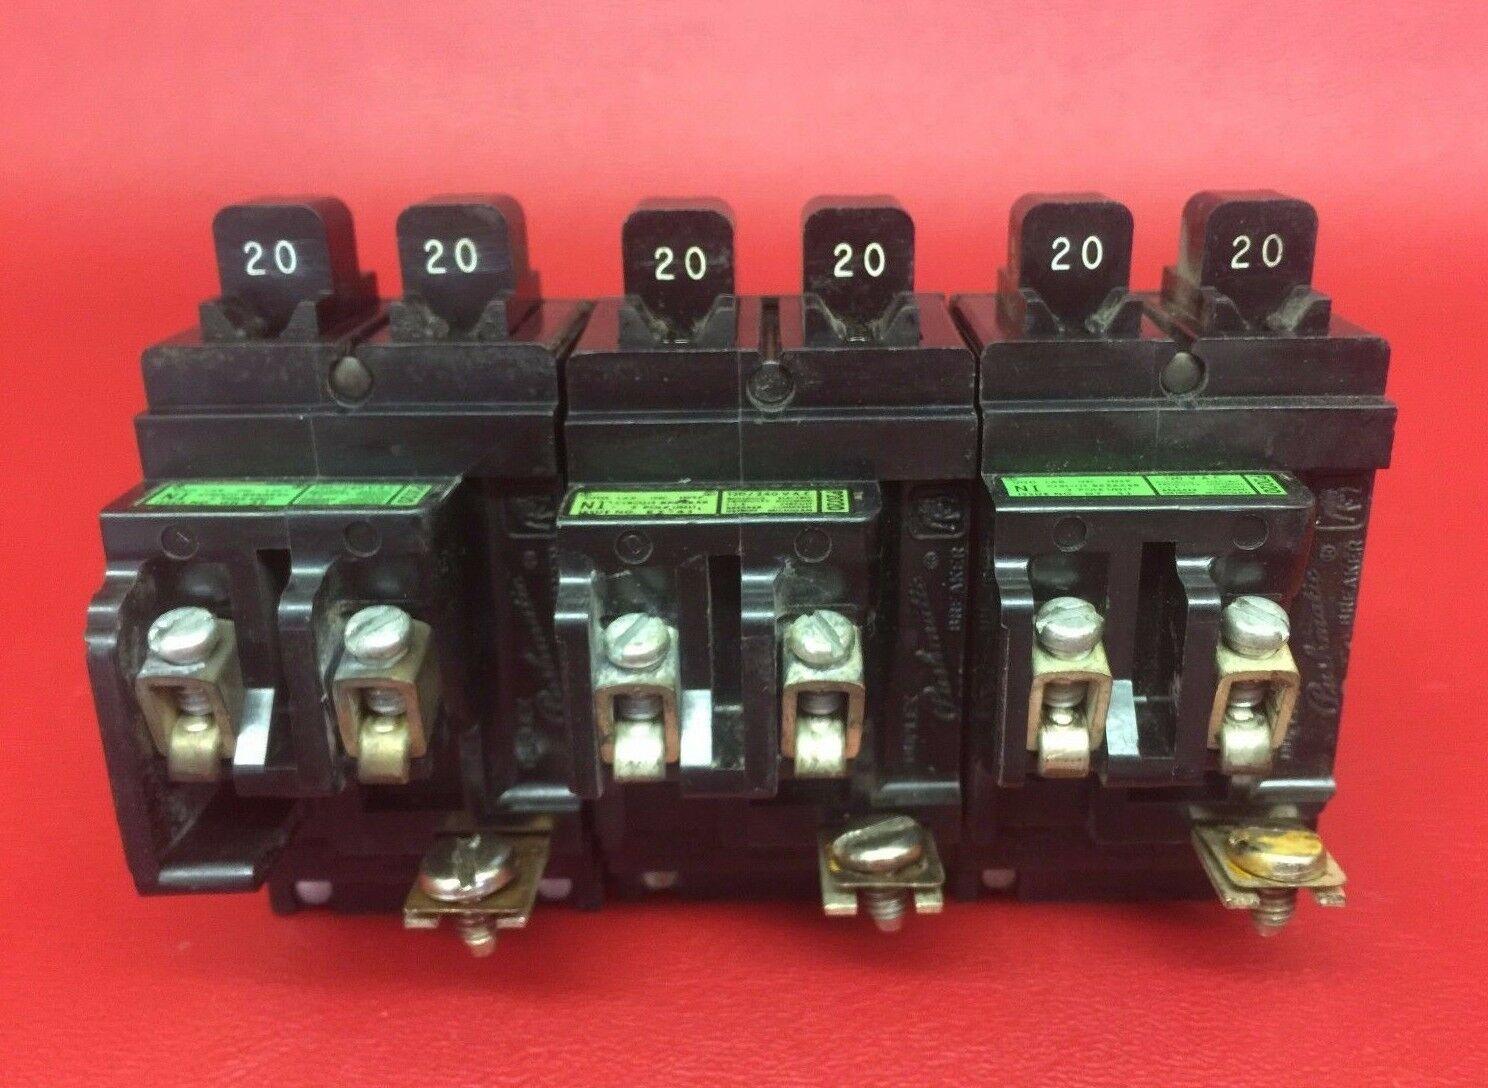 1 Pushmatic Ite P2020 Twin Duplex Breaker Will Fit Anywhere On Bus Home Residential Circuit Zinsco Type R38 No Clt Tab Of 3only 3 Available See More